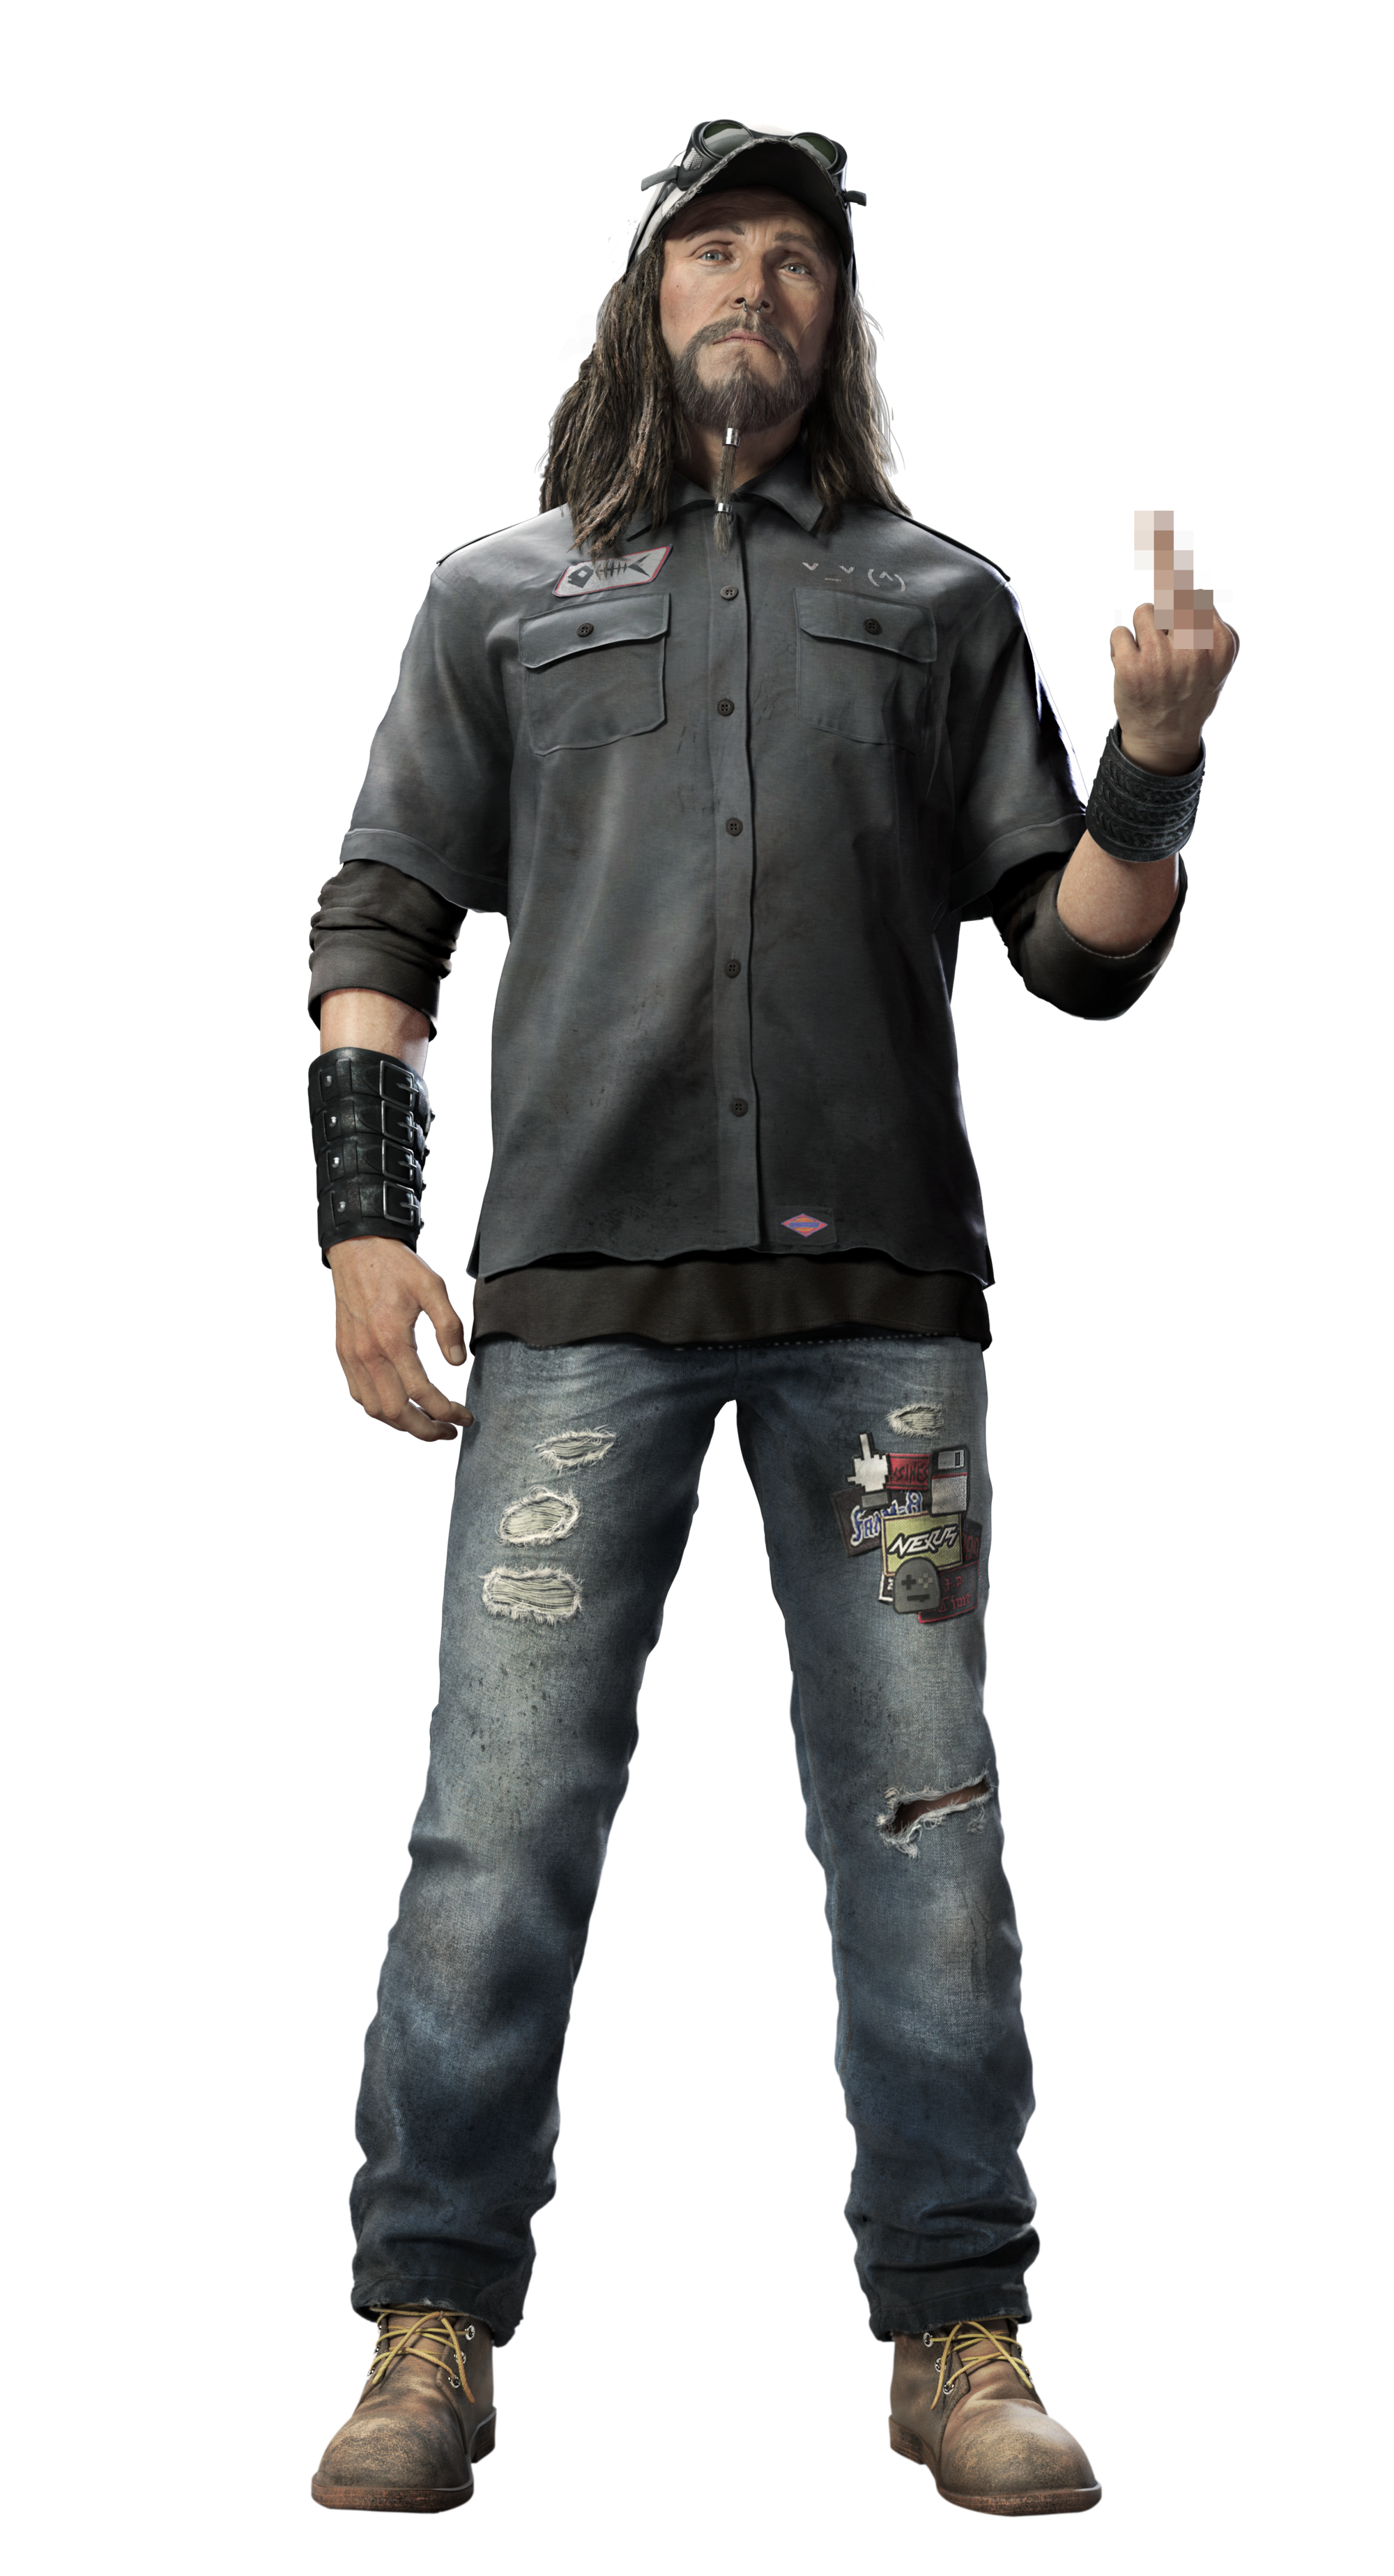 Watch dogs 2 wiki josh